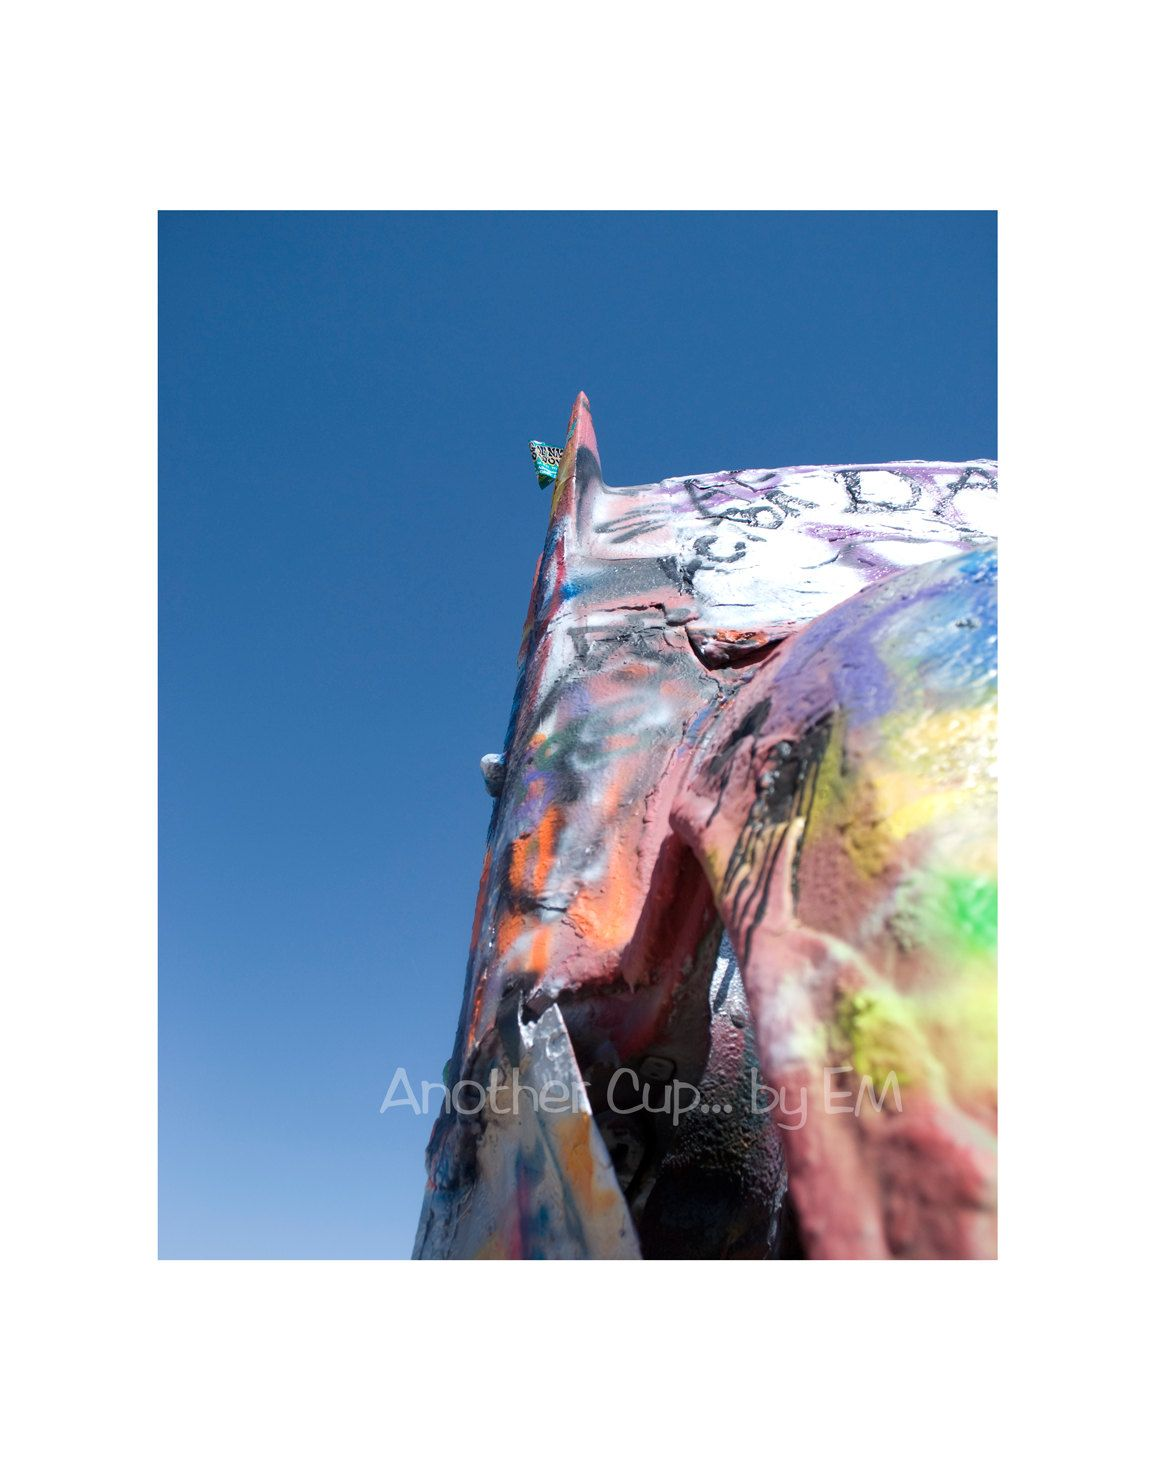 Items similar to Classic Car Photography 8×10 – Graffiti Art, Cadillac Ranch, Vivid Blue Sky, Classic Cars, Americana on Etsy